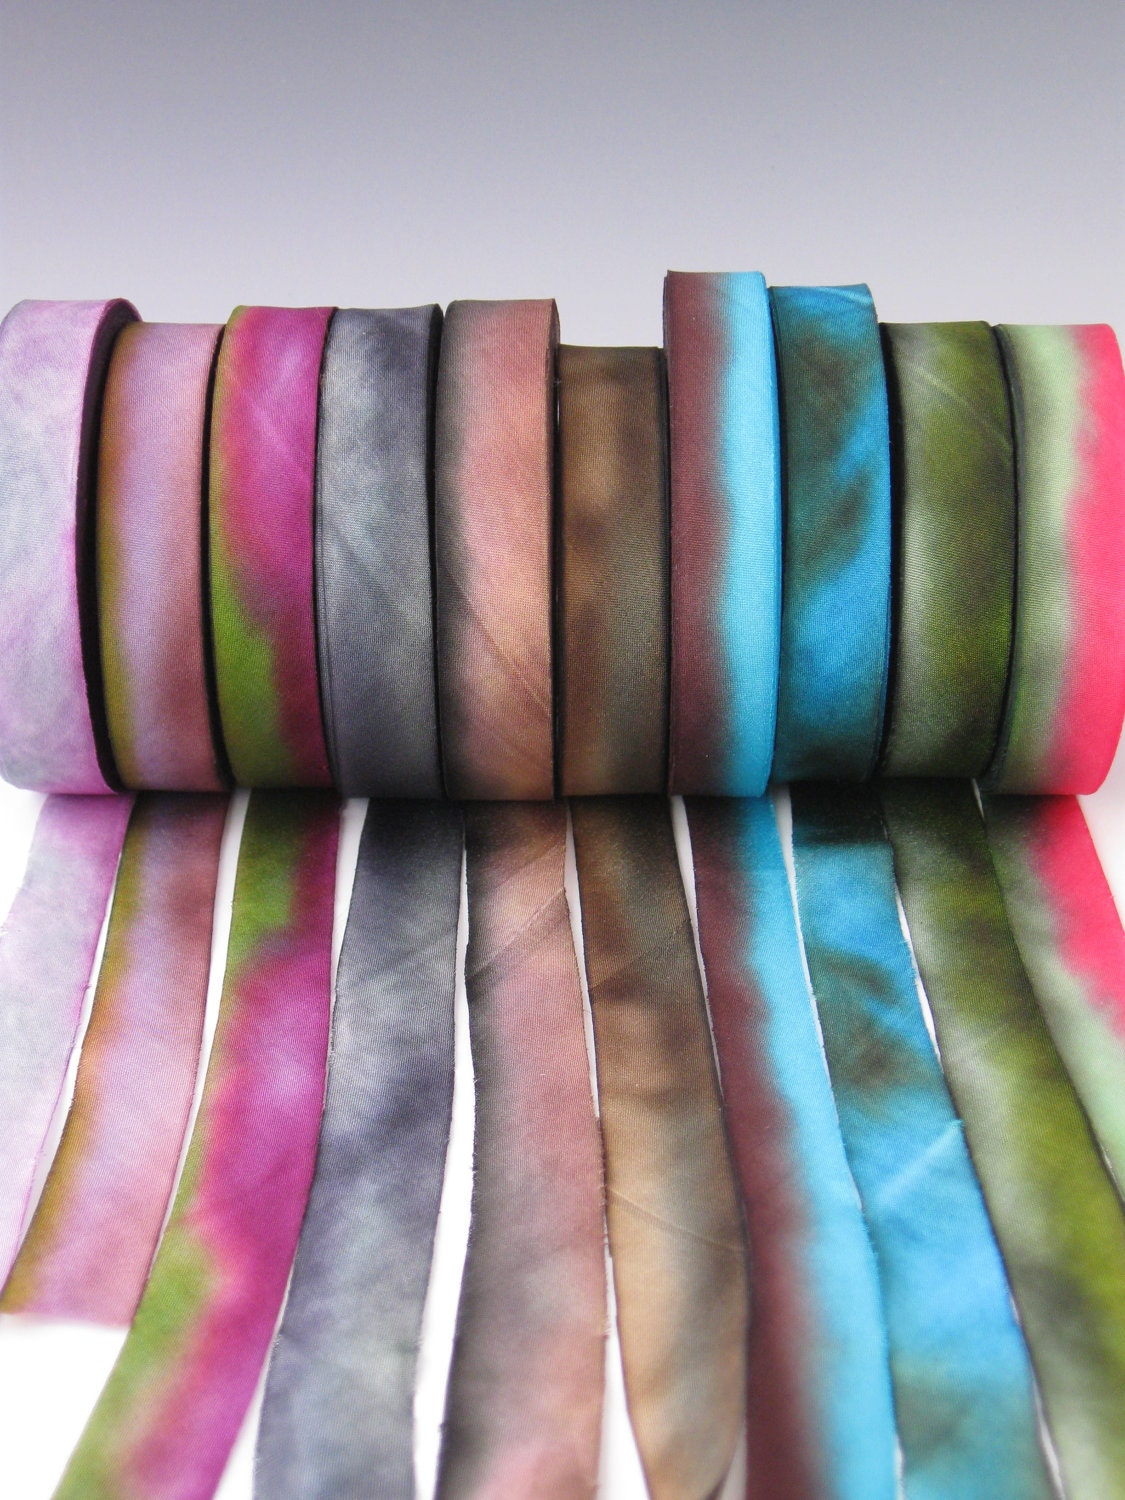 A Hanah Hand Dyed Silk Ribbon CollectionHand Dyed Silk